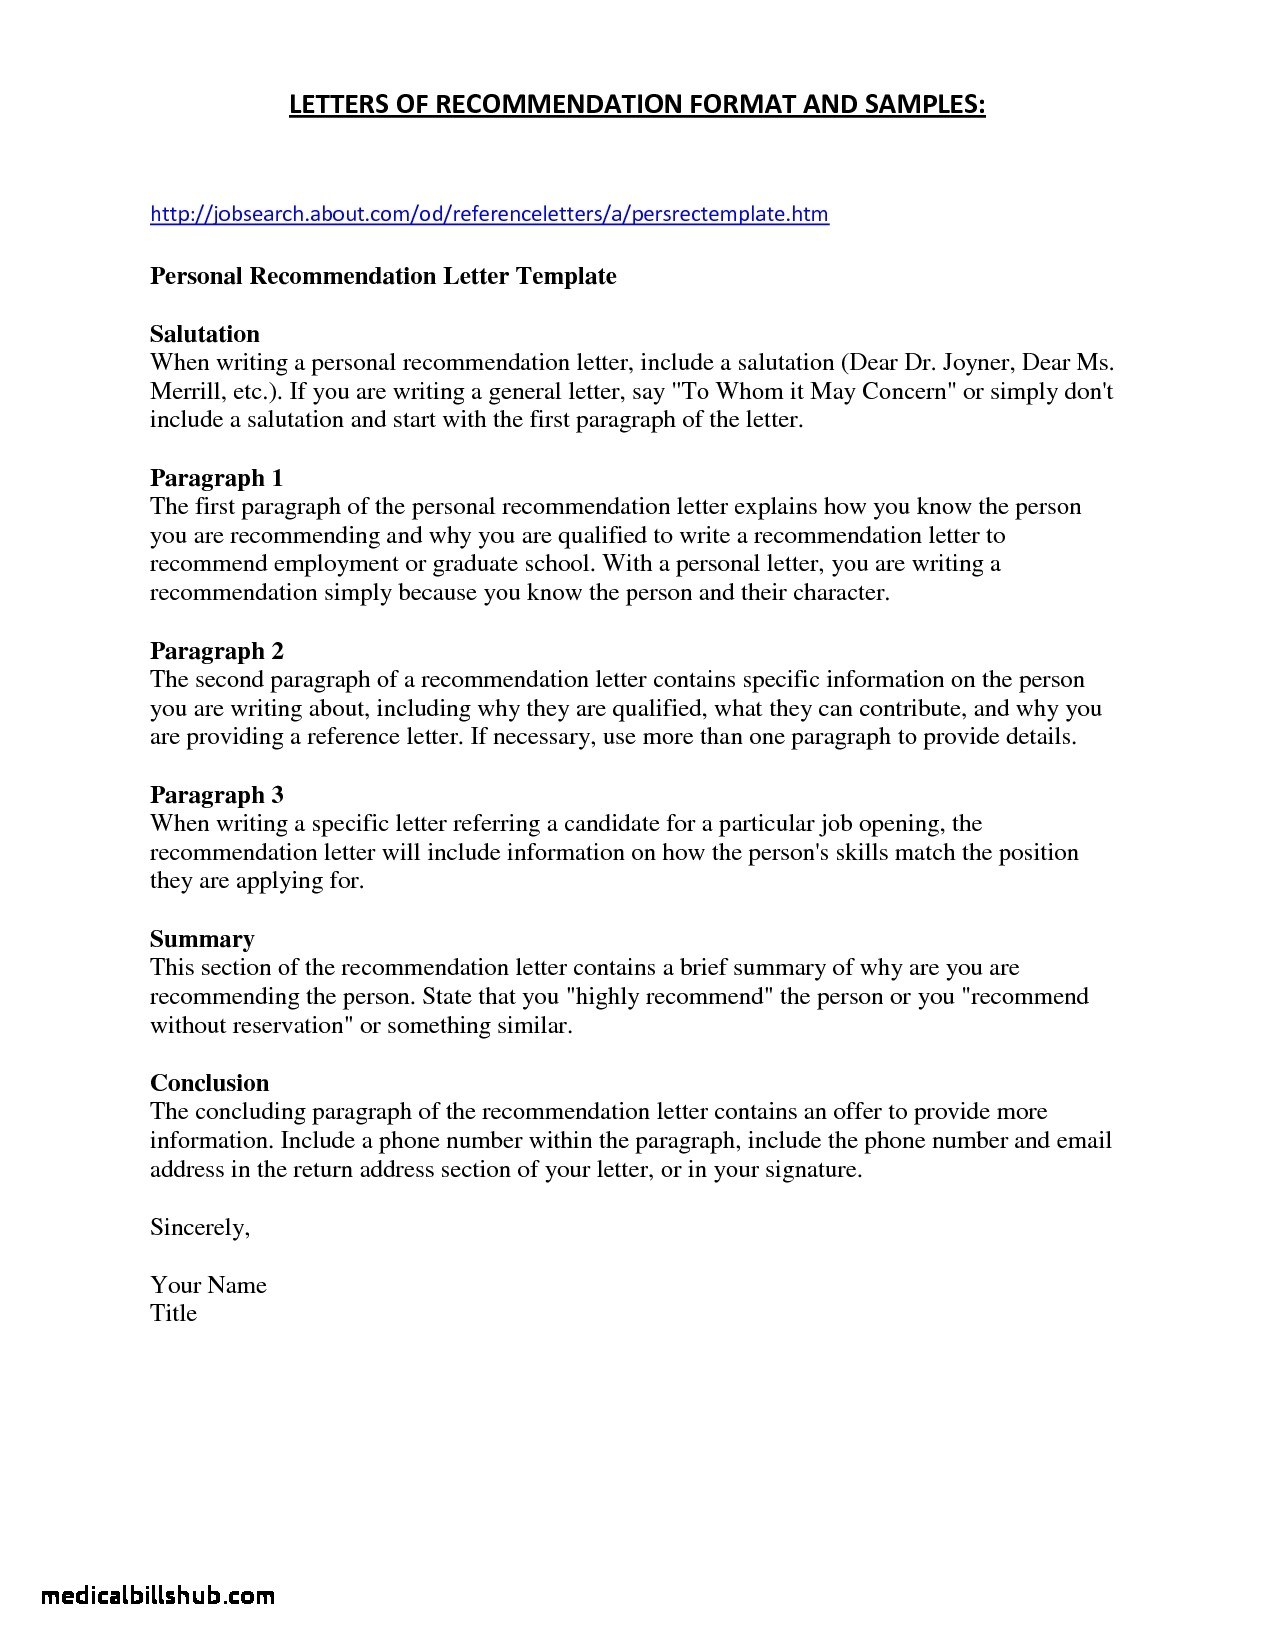 nursing school recommendation letter template Collection-Sample Re mendation Letter for Job New Letter Re Mendation for Nursing School associates Degree In 17-a